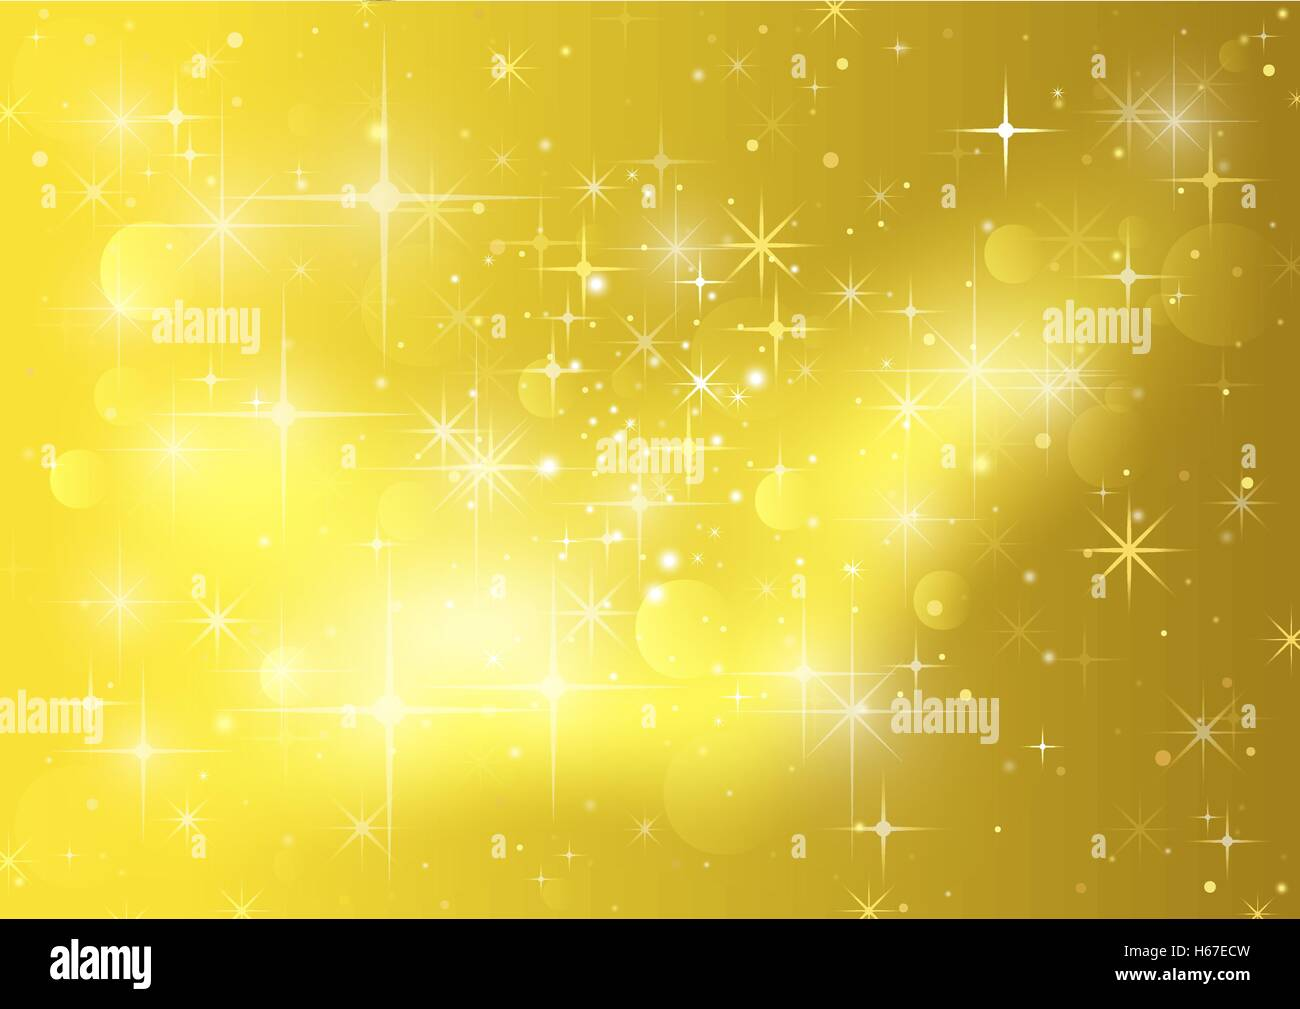 Gold Background With Stars And Sparklers - Stock Vector